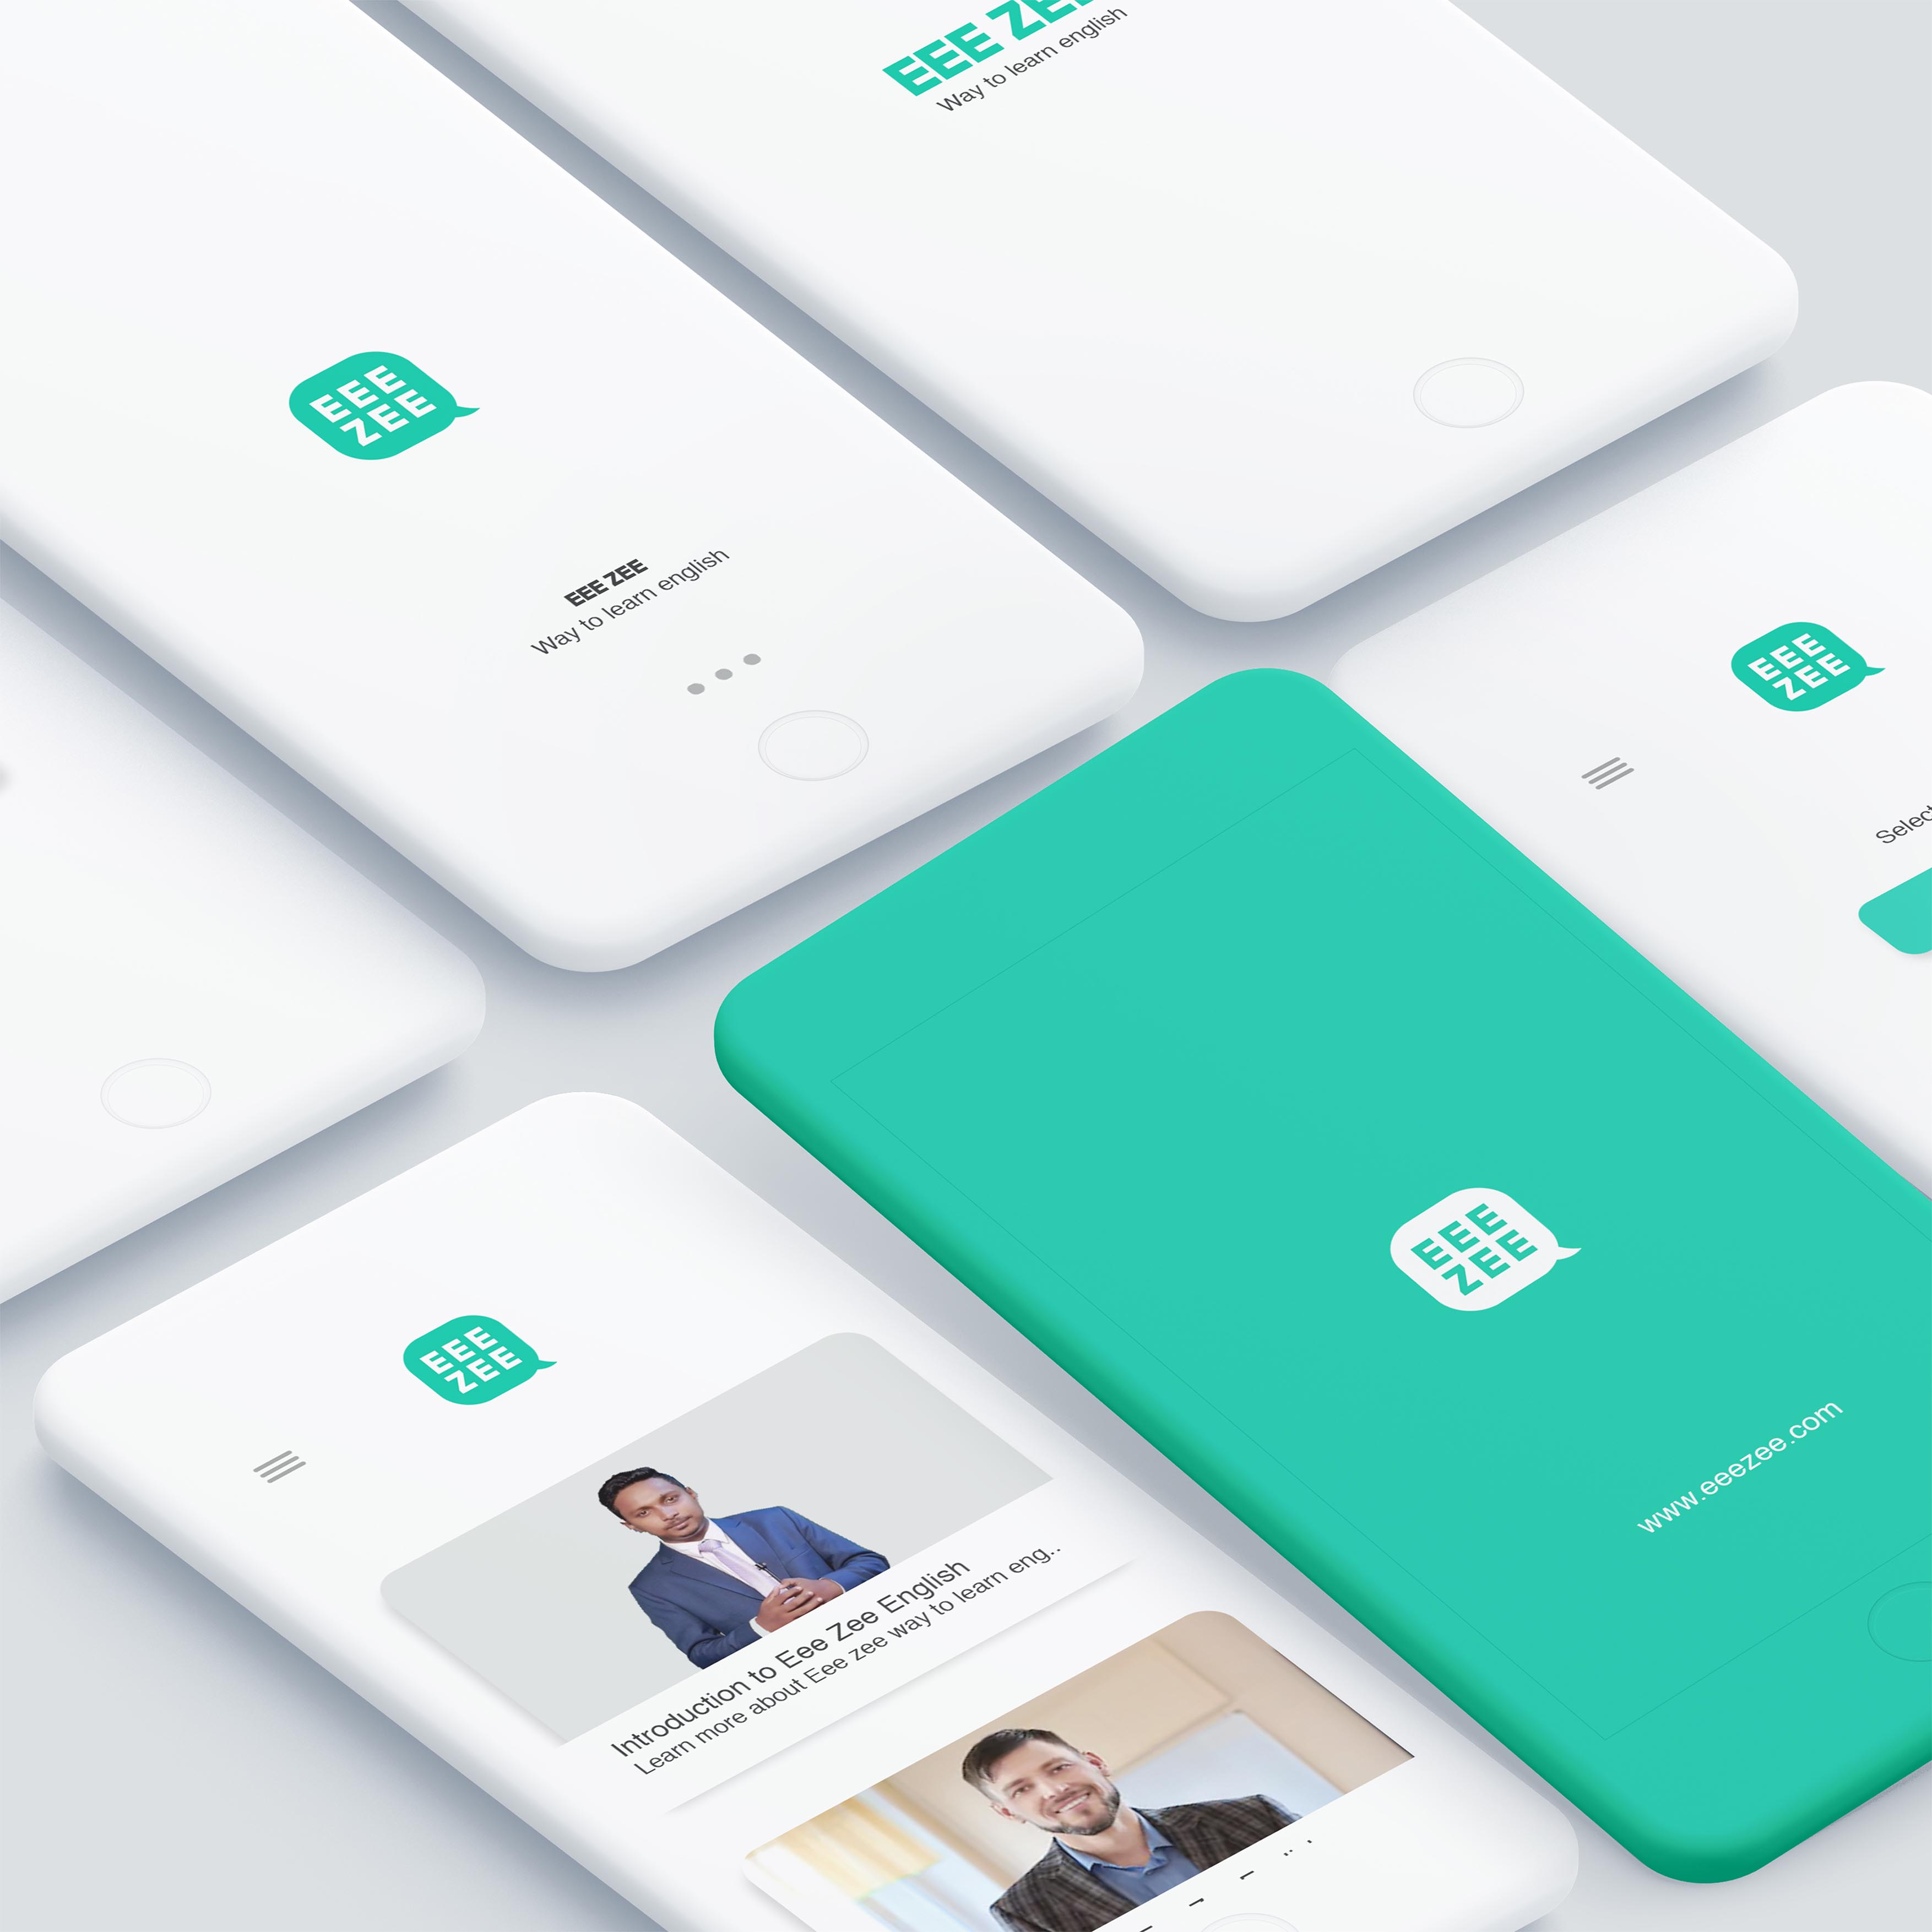 Identity Design and Branding For Eee Zee English Learning App